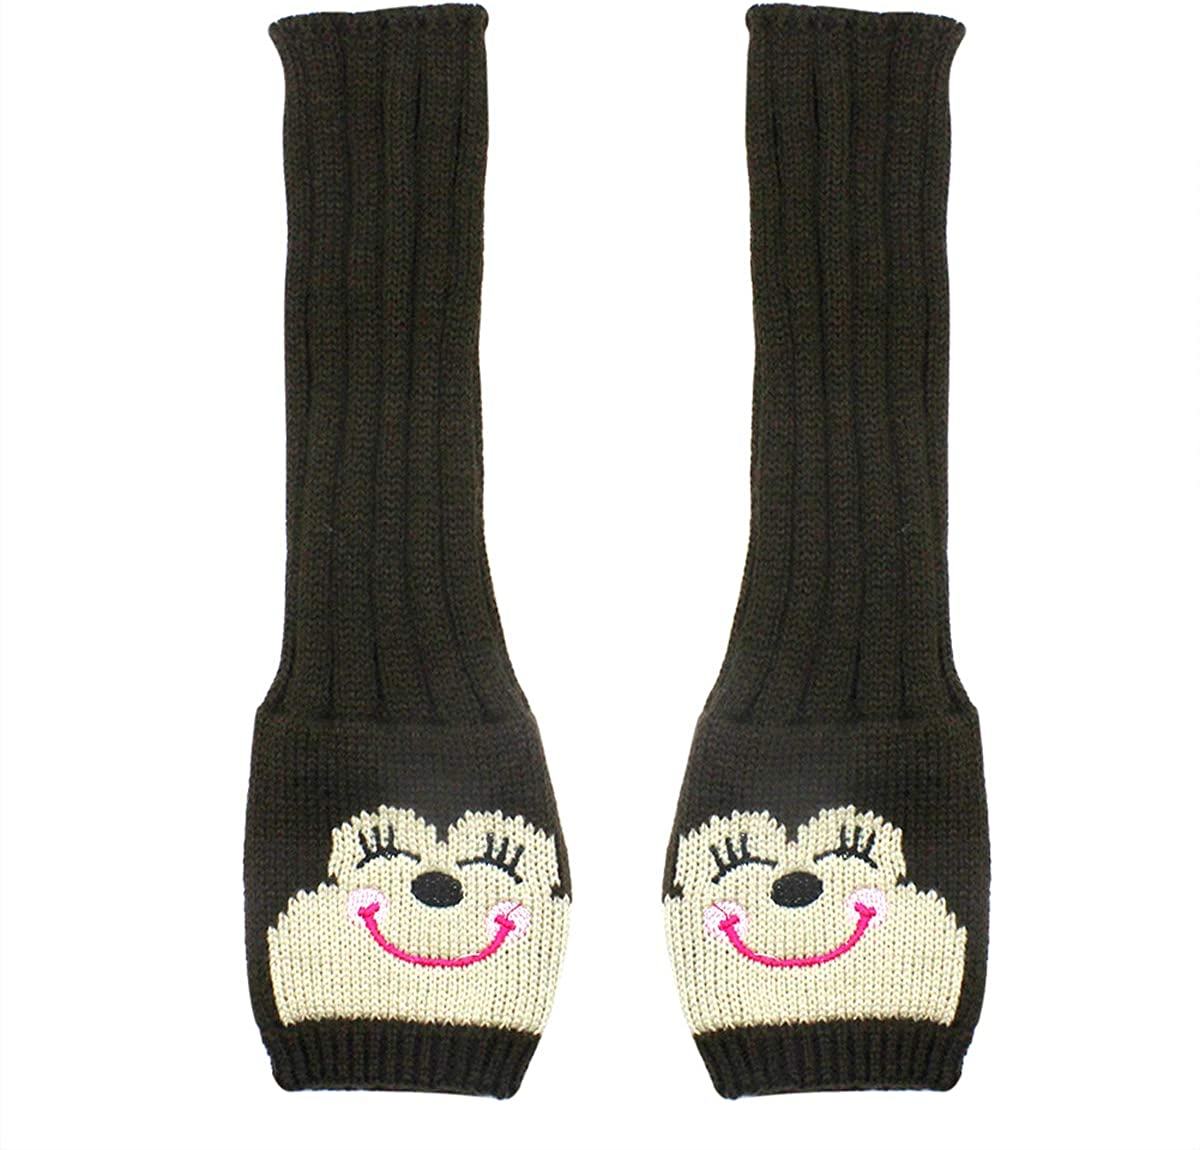 Long Sleeve Fingerless Gloves Cute Knit Arm Warmers with Thumb Holes for Girls Women